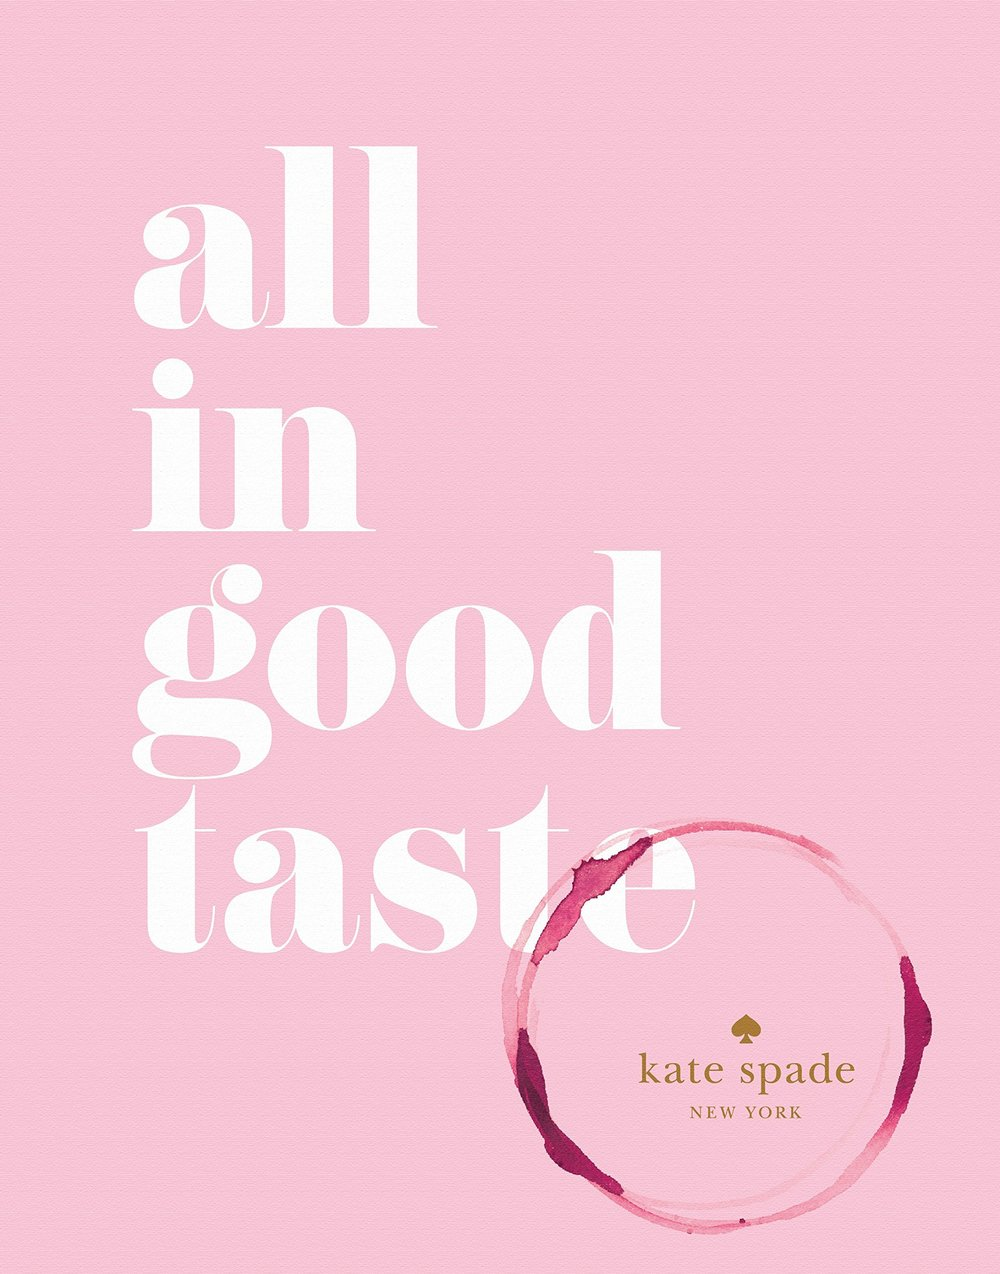 ALL IN GOOD TASTE KATE SPADE GIFT GUIDE.jpg